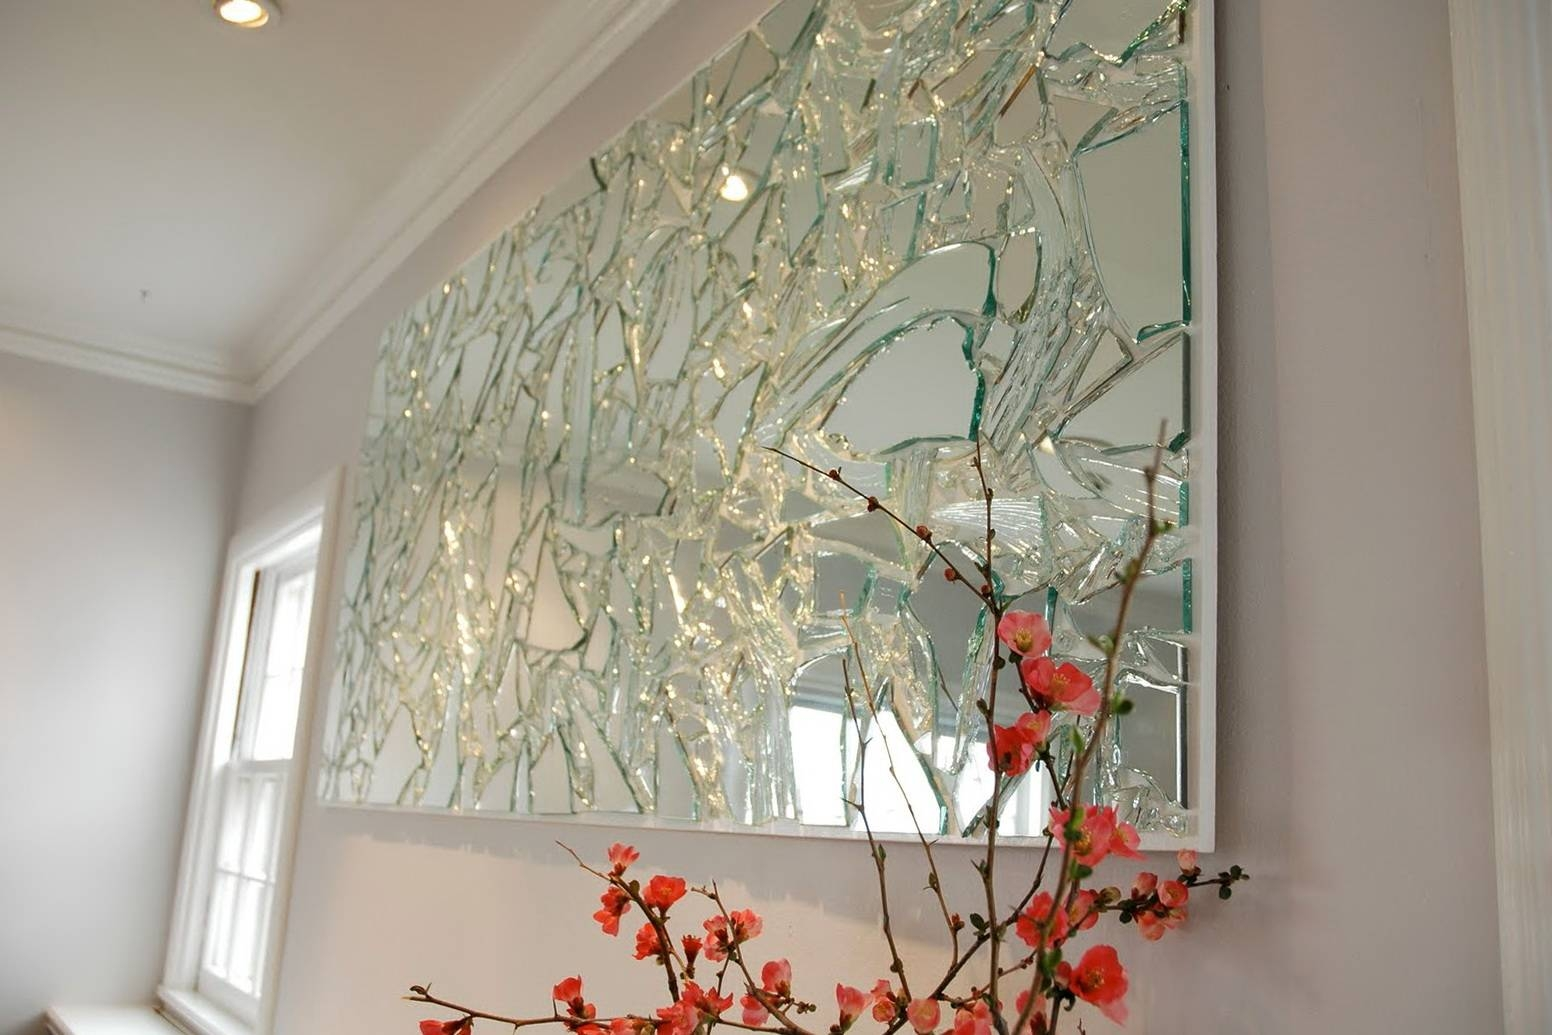 Mirror Wall Art Diy | Home Design Ideas Within Most Up To Date Diy Mirror Wall Art (View 14 of 20)